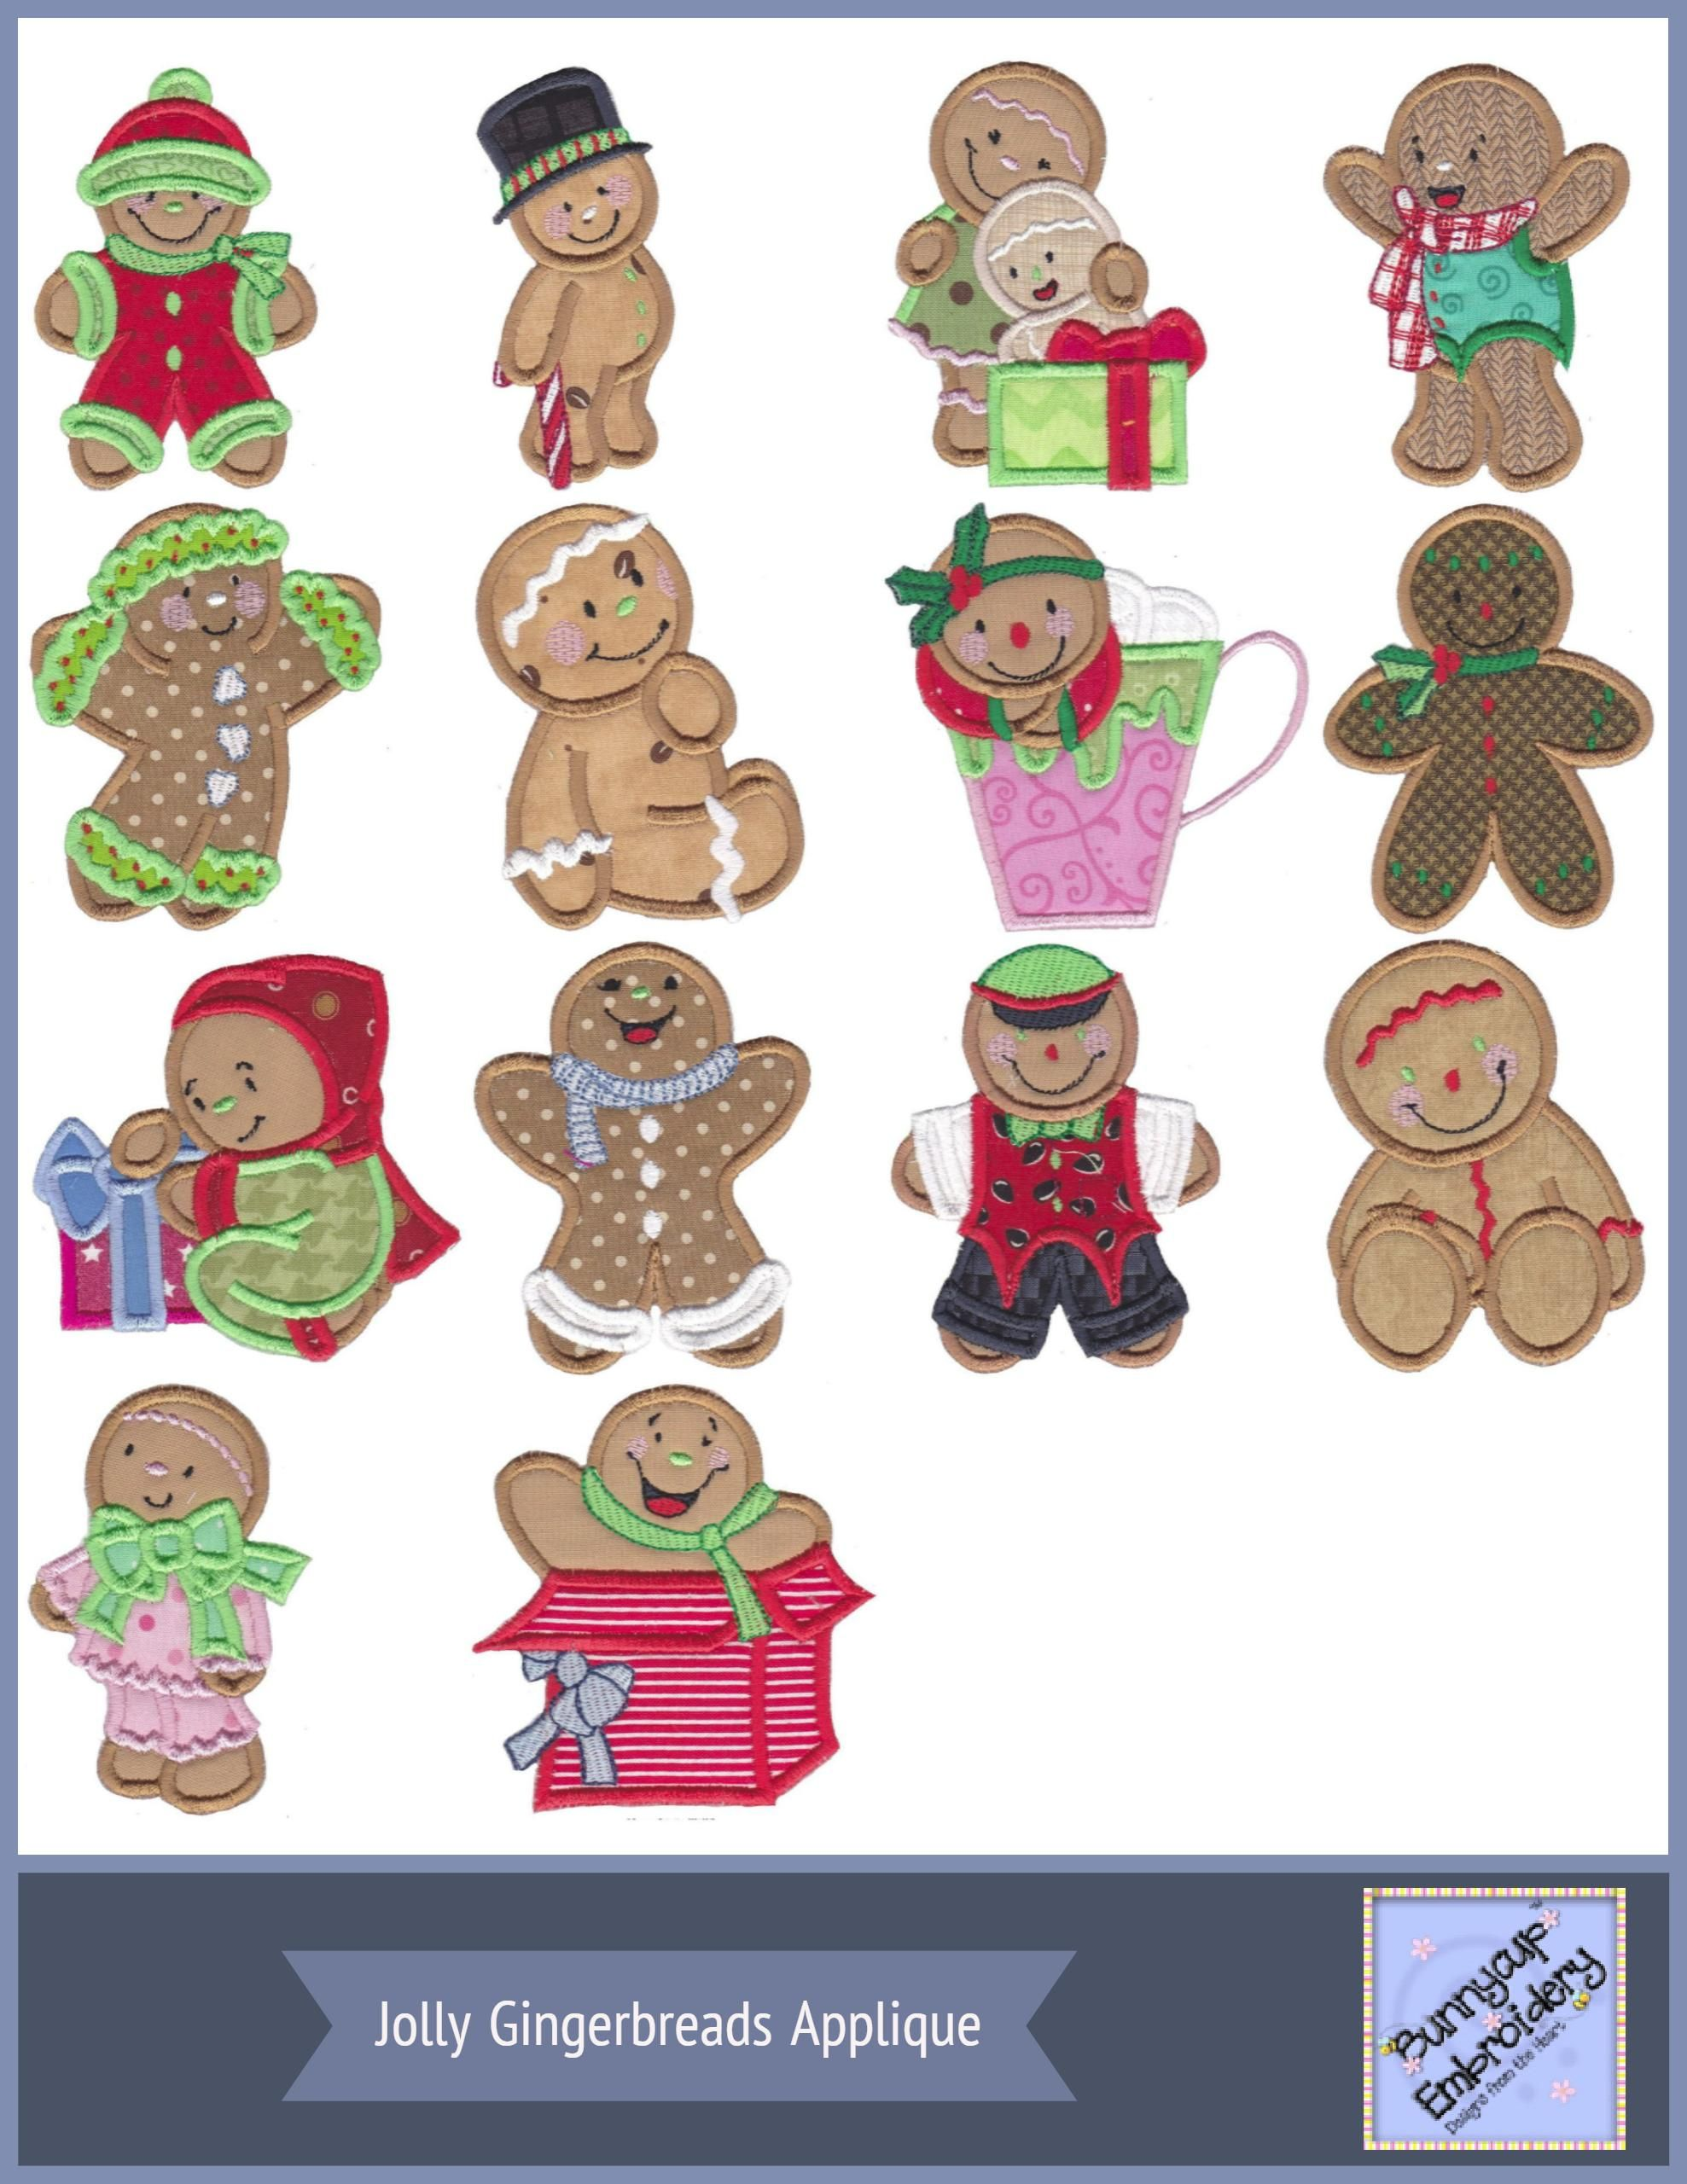 Jolly Gingerbreads Applique Machine Embroidery Designs At Bunnycup